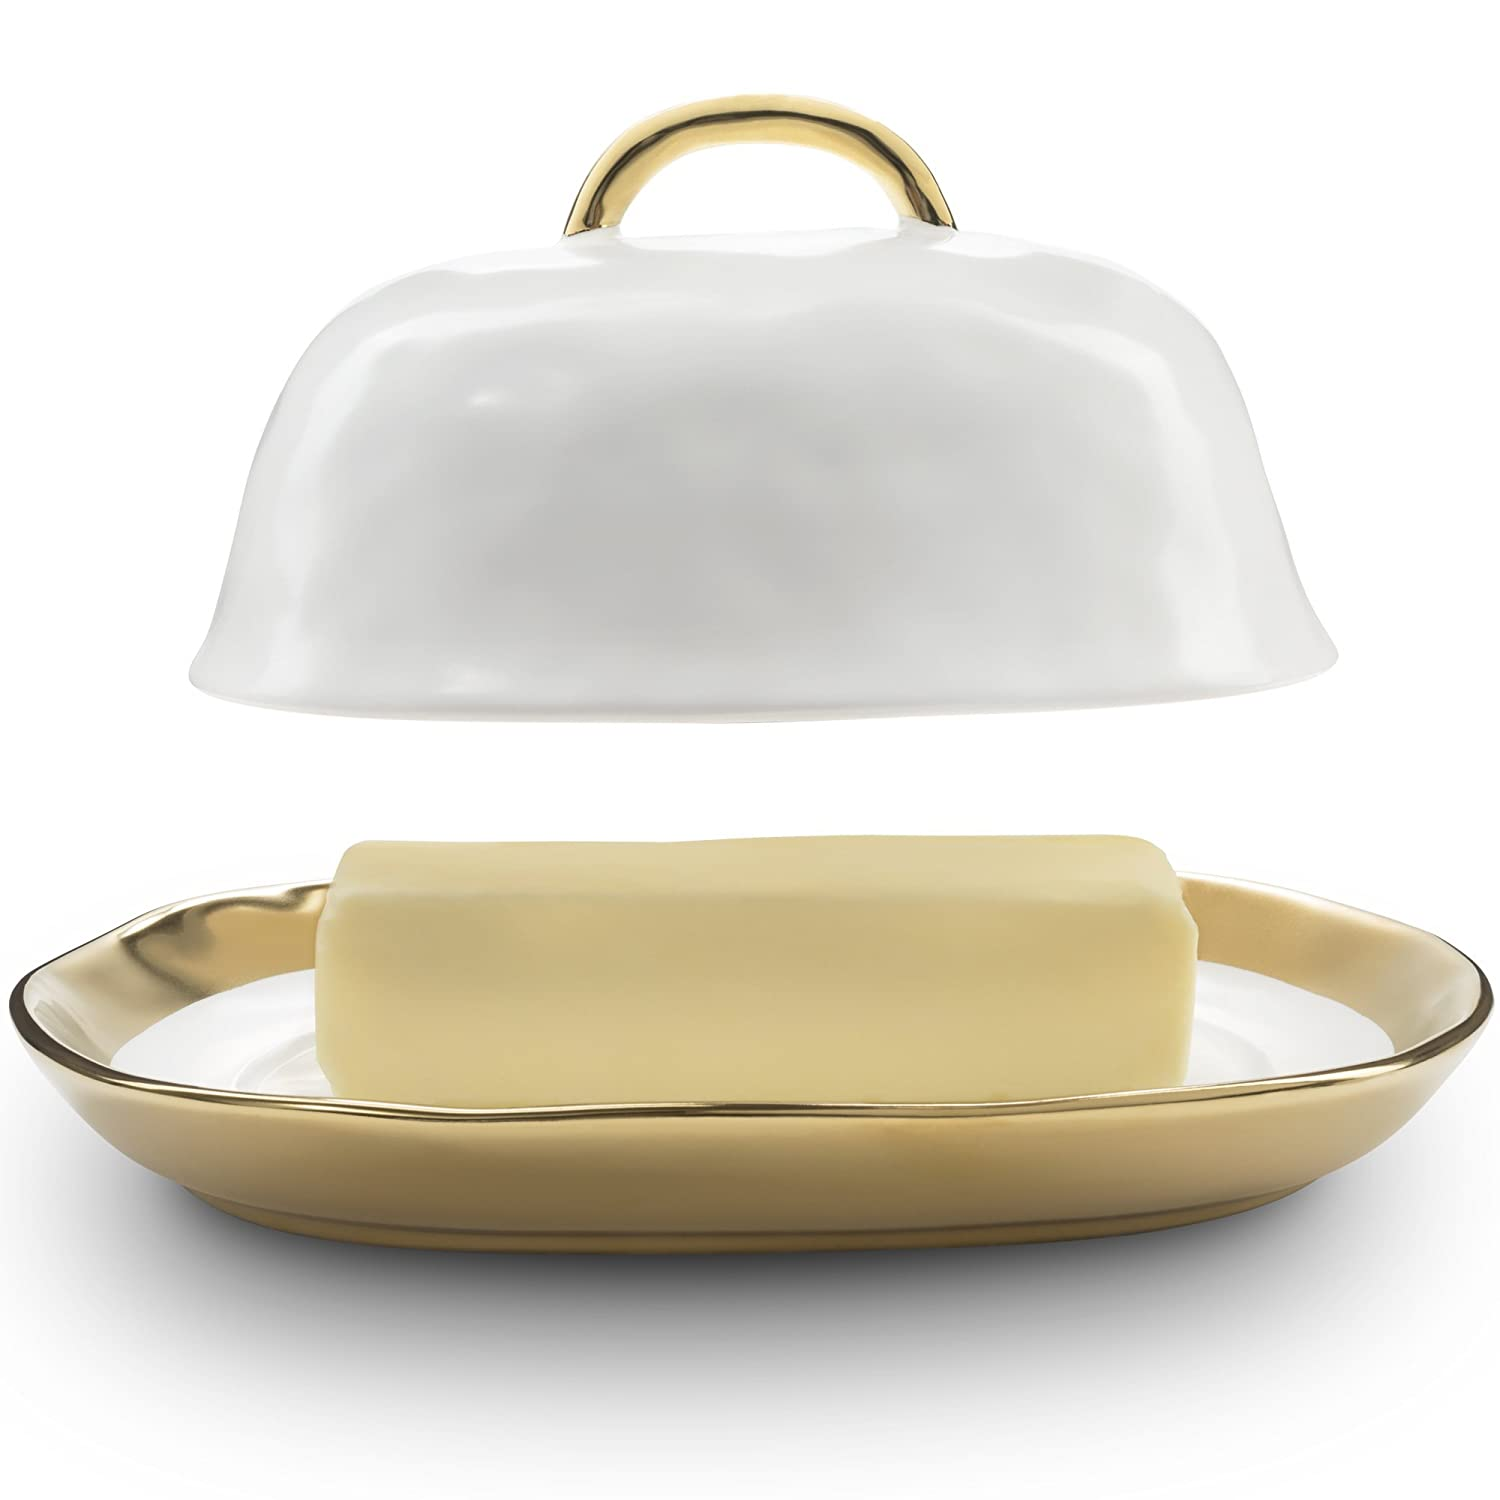 Bezrat Porcelain Butter Dish with Lid - Elegant Butter Dish with Cover and Handle, White/Gold